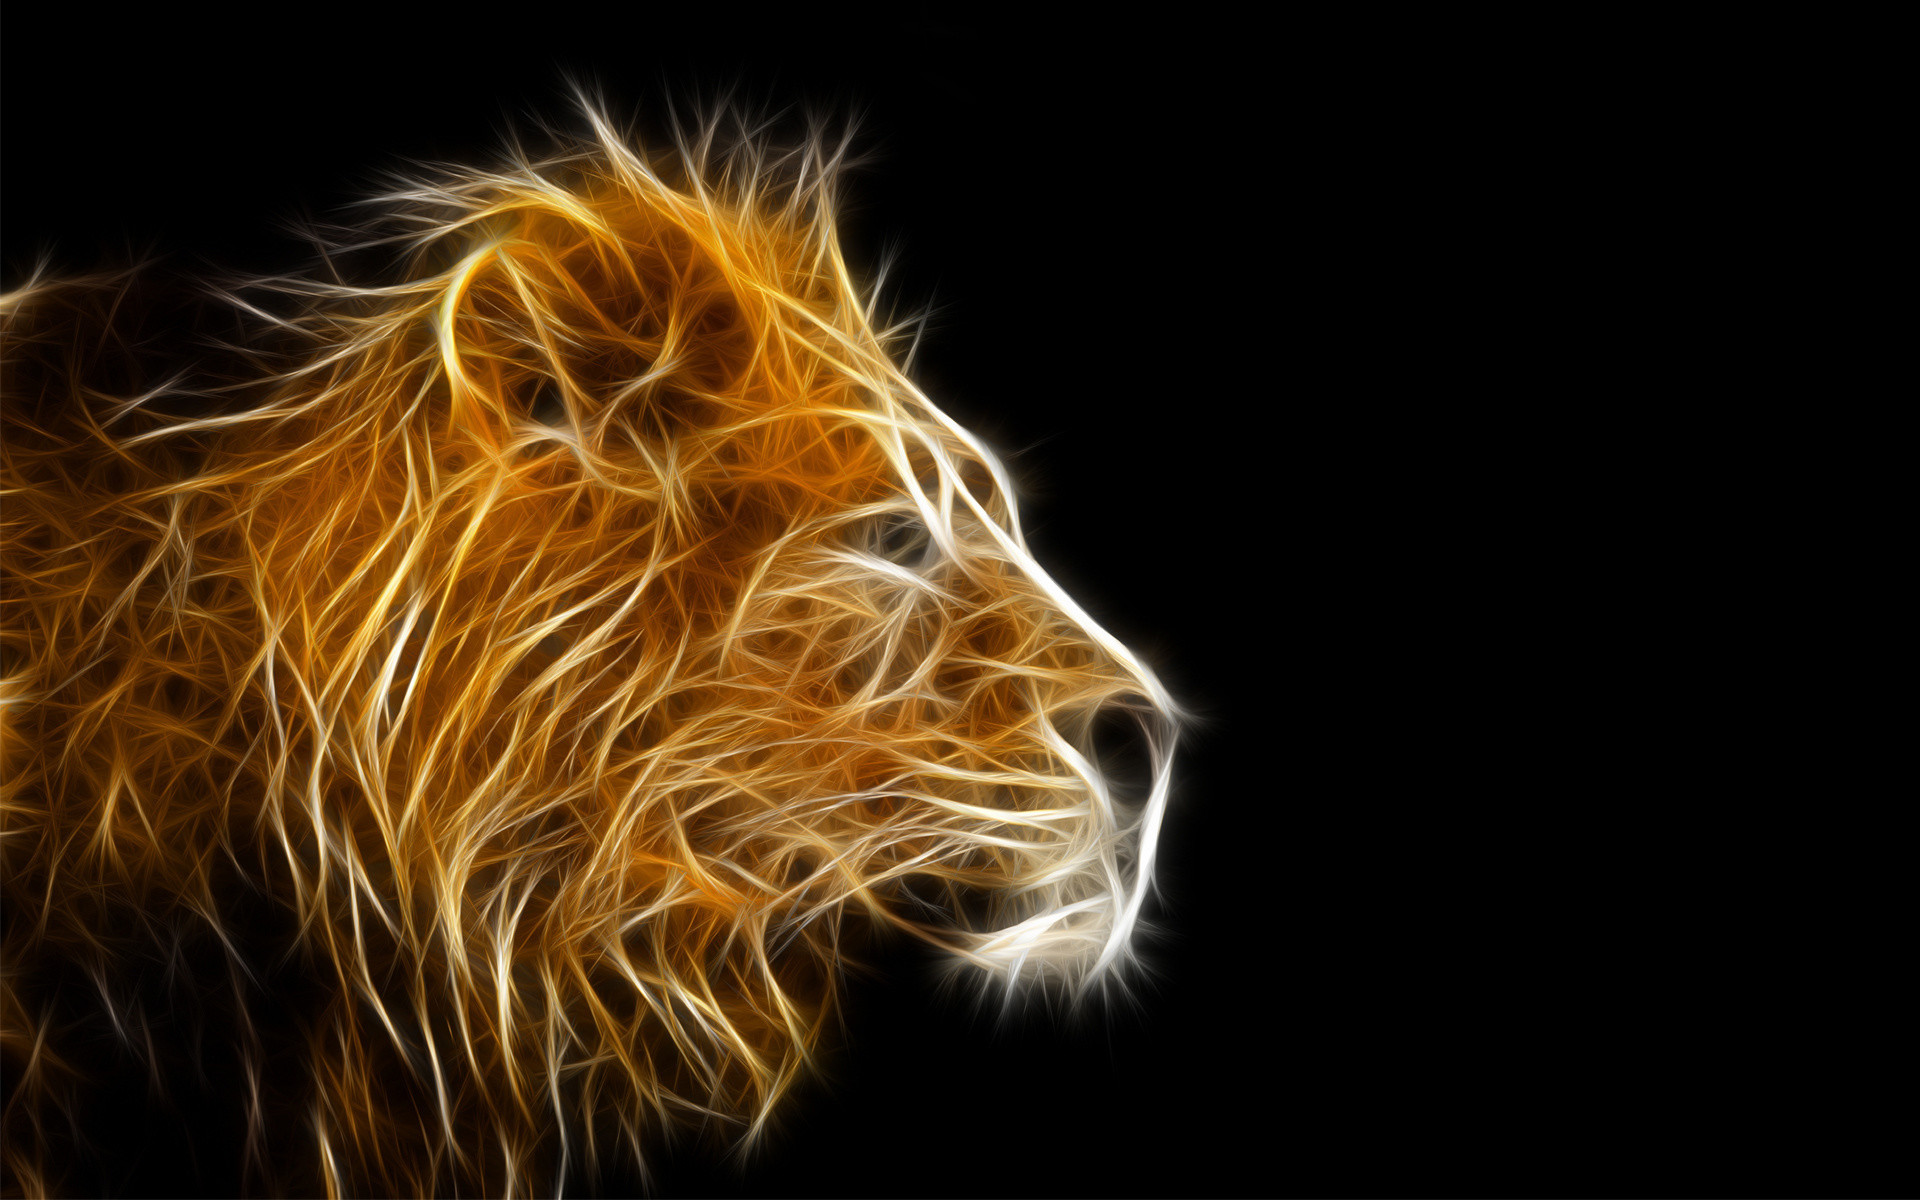 Animal Wallpaper: Lion Wallpaper Black And White Wallpaper Mobile with High  Resolution